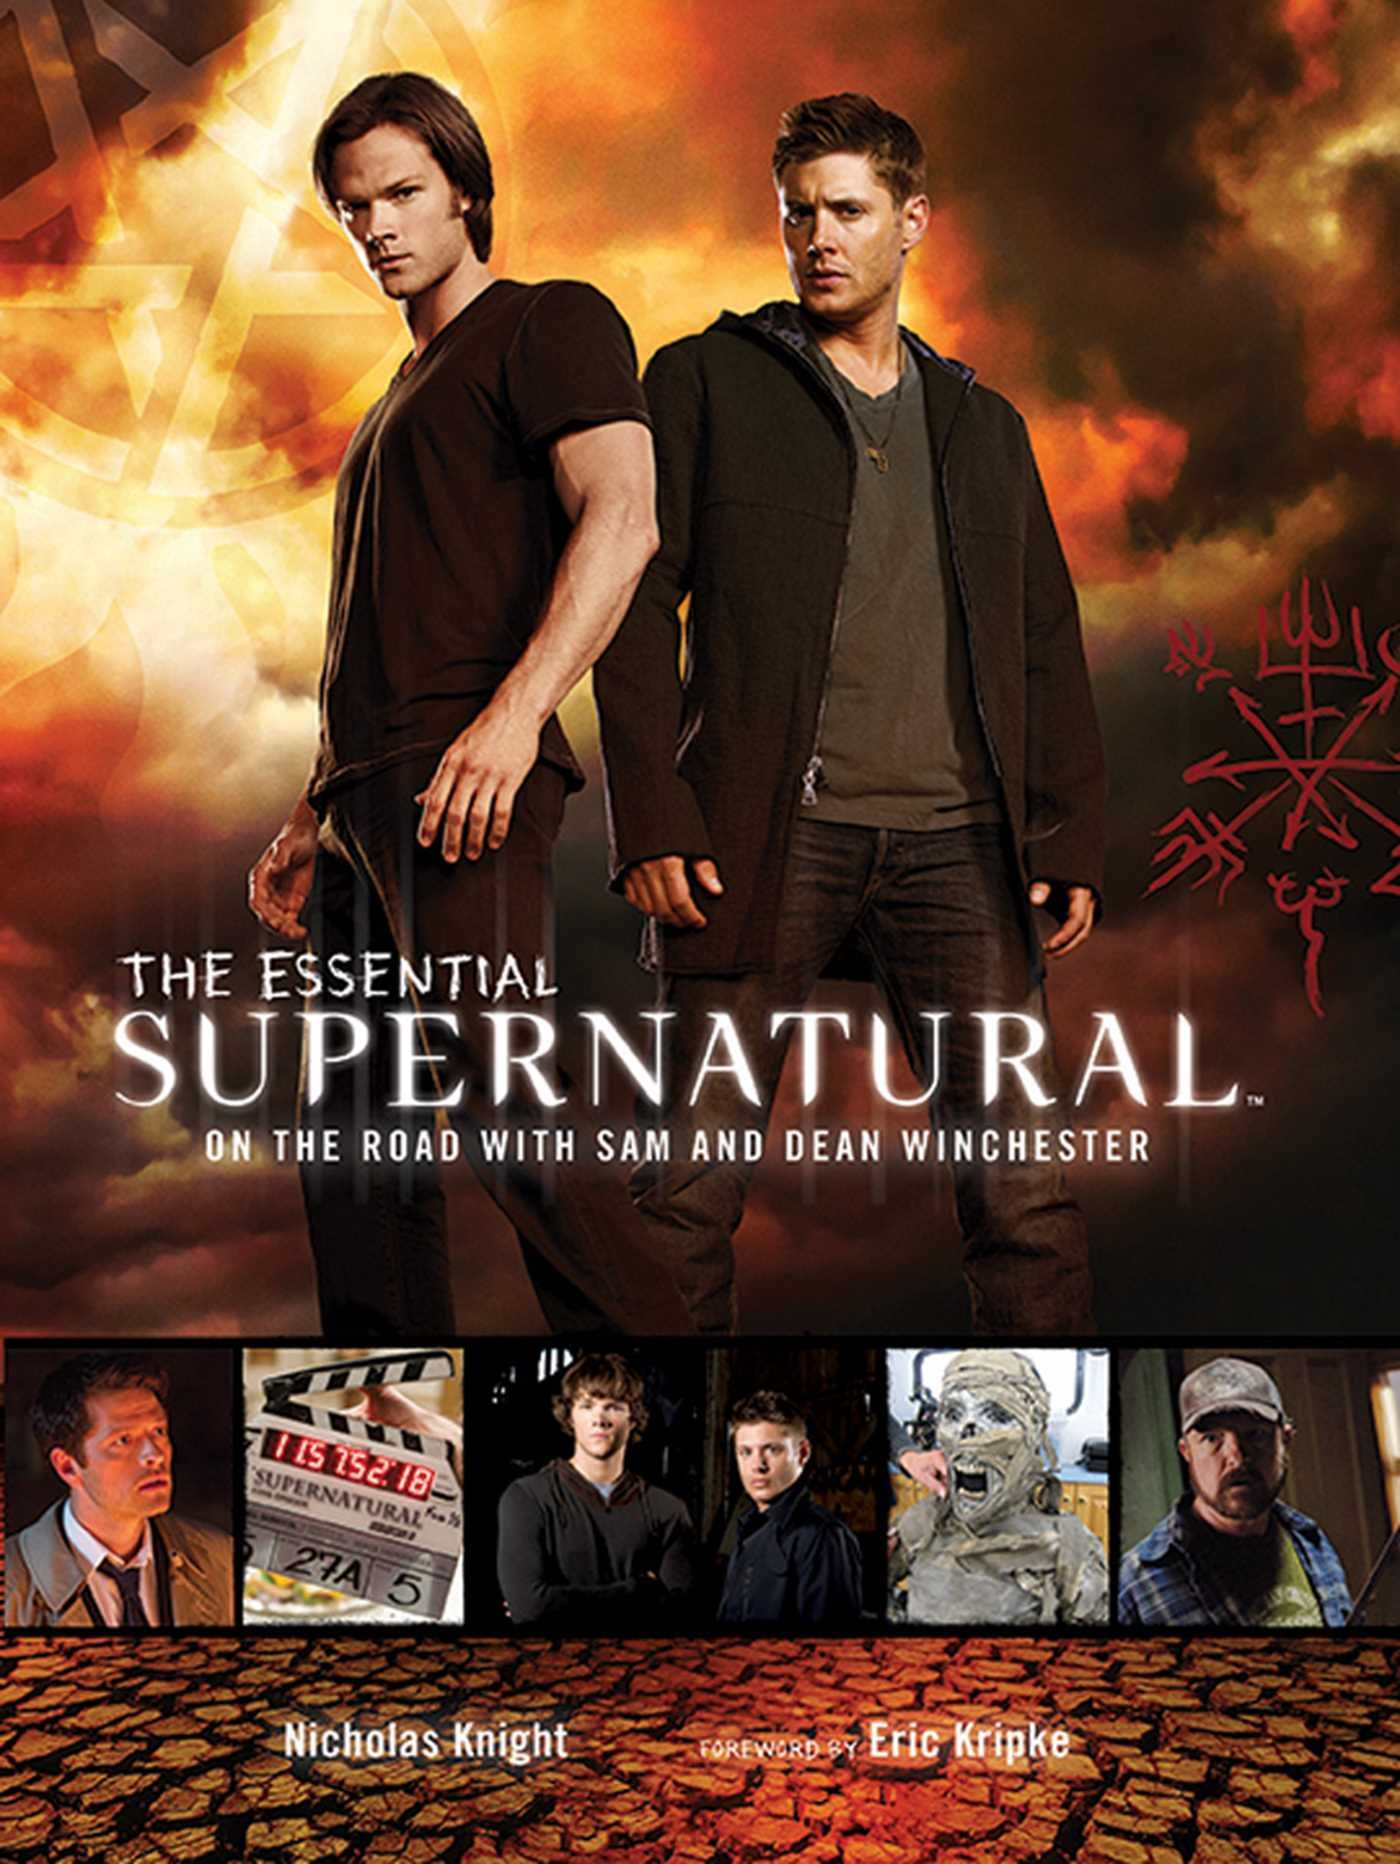 the essential supernatural on the road with sam and dean winchester